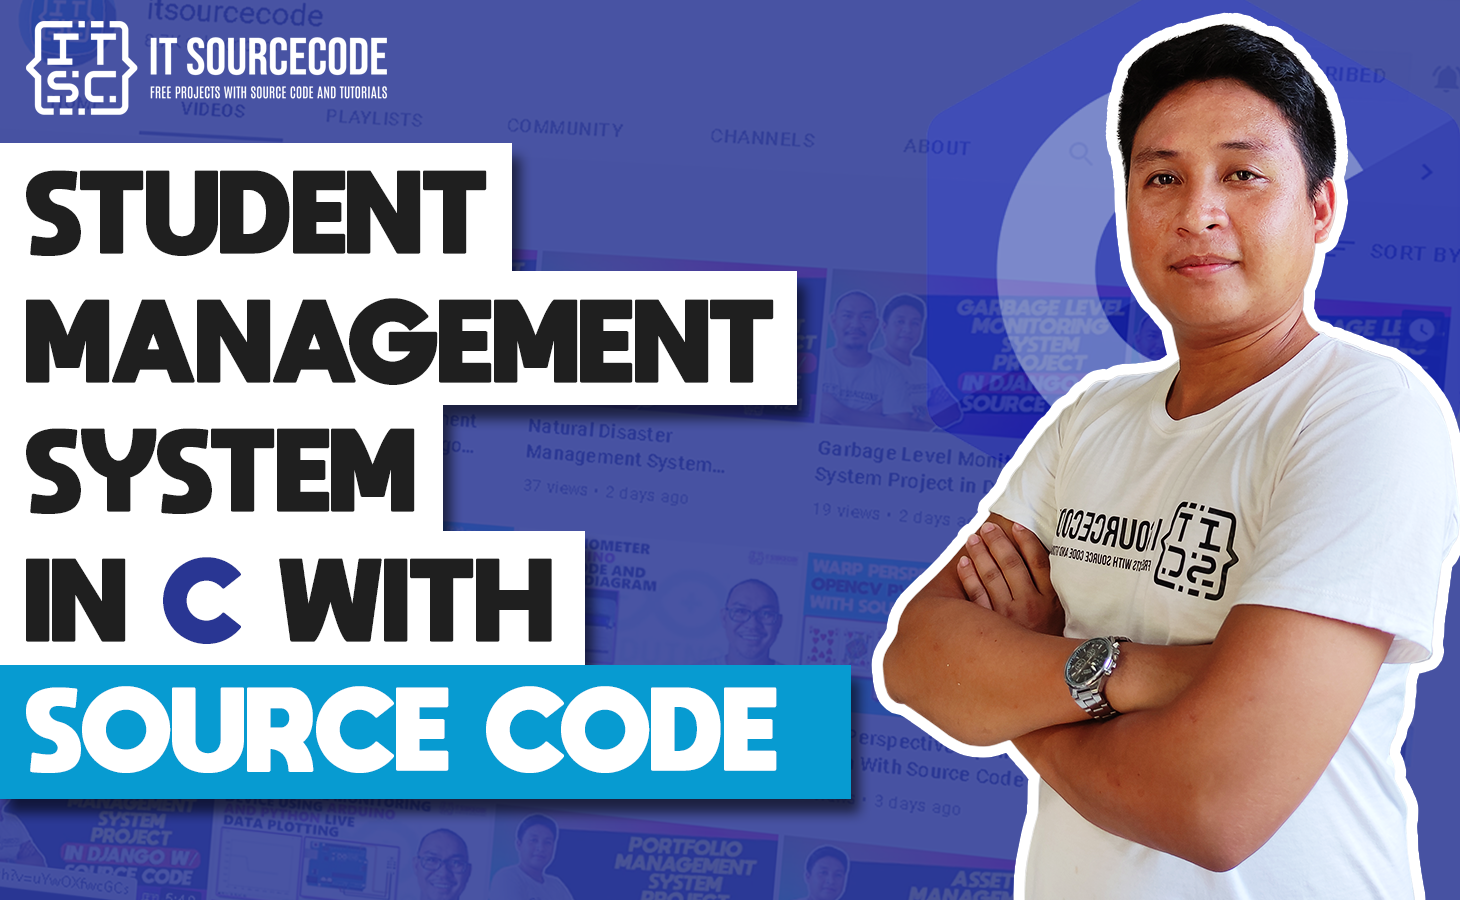 student management system in c with source code